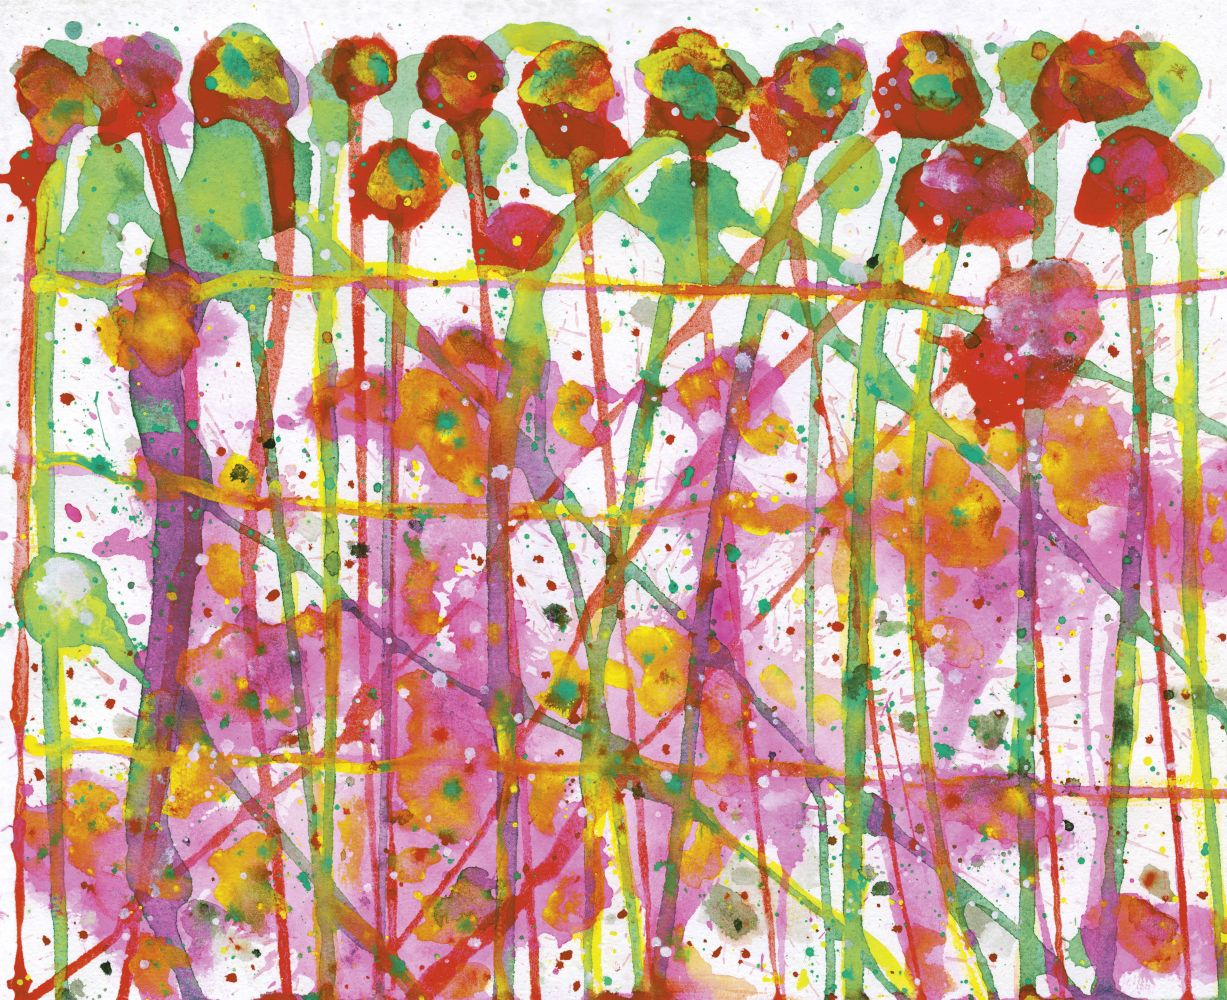 J. Steven Manolis, Dance of the Sugar Plums, 2007, Watercolor and gouache on paper, 11 x 13.5 inches, For sale at Manolis Projects Art Gallery, Miami Fl